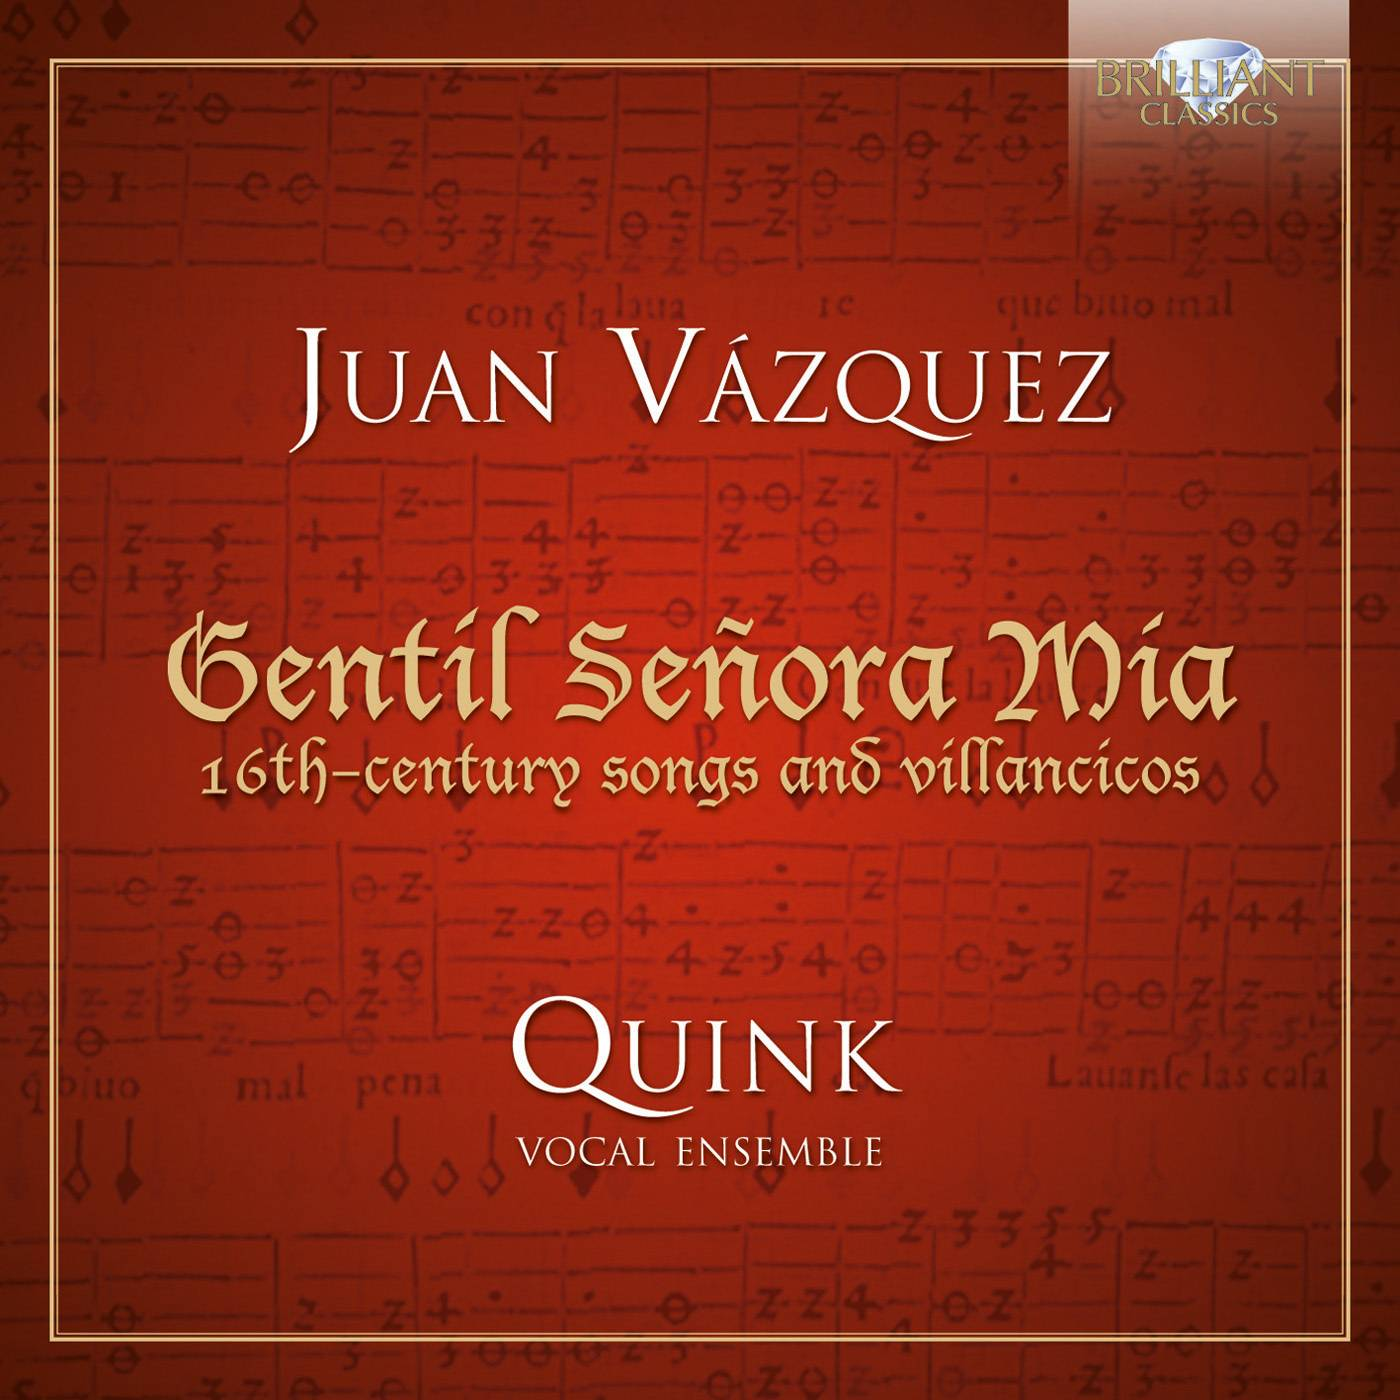 Quink Vocal Ensemble - Juan Vazquez: Gentil senora mia: 16th-century songs and villancicos (2013)